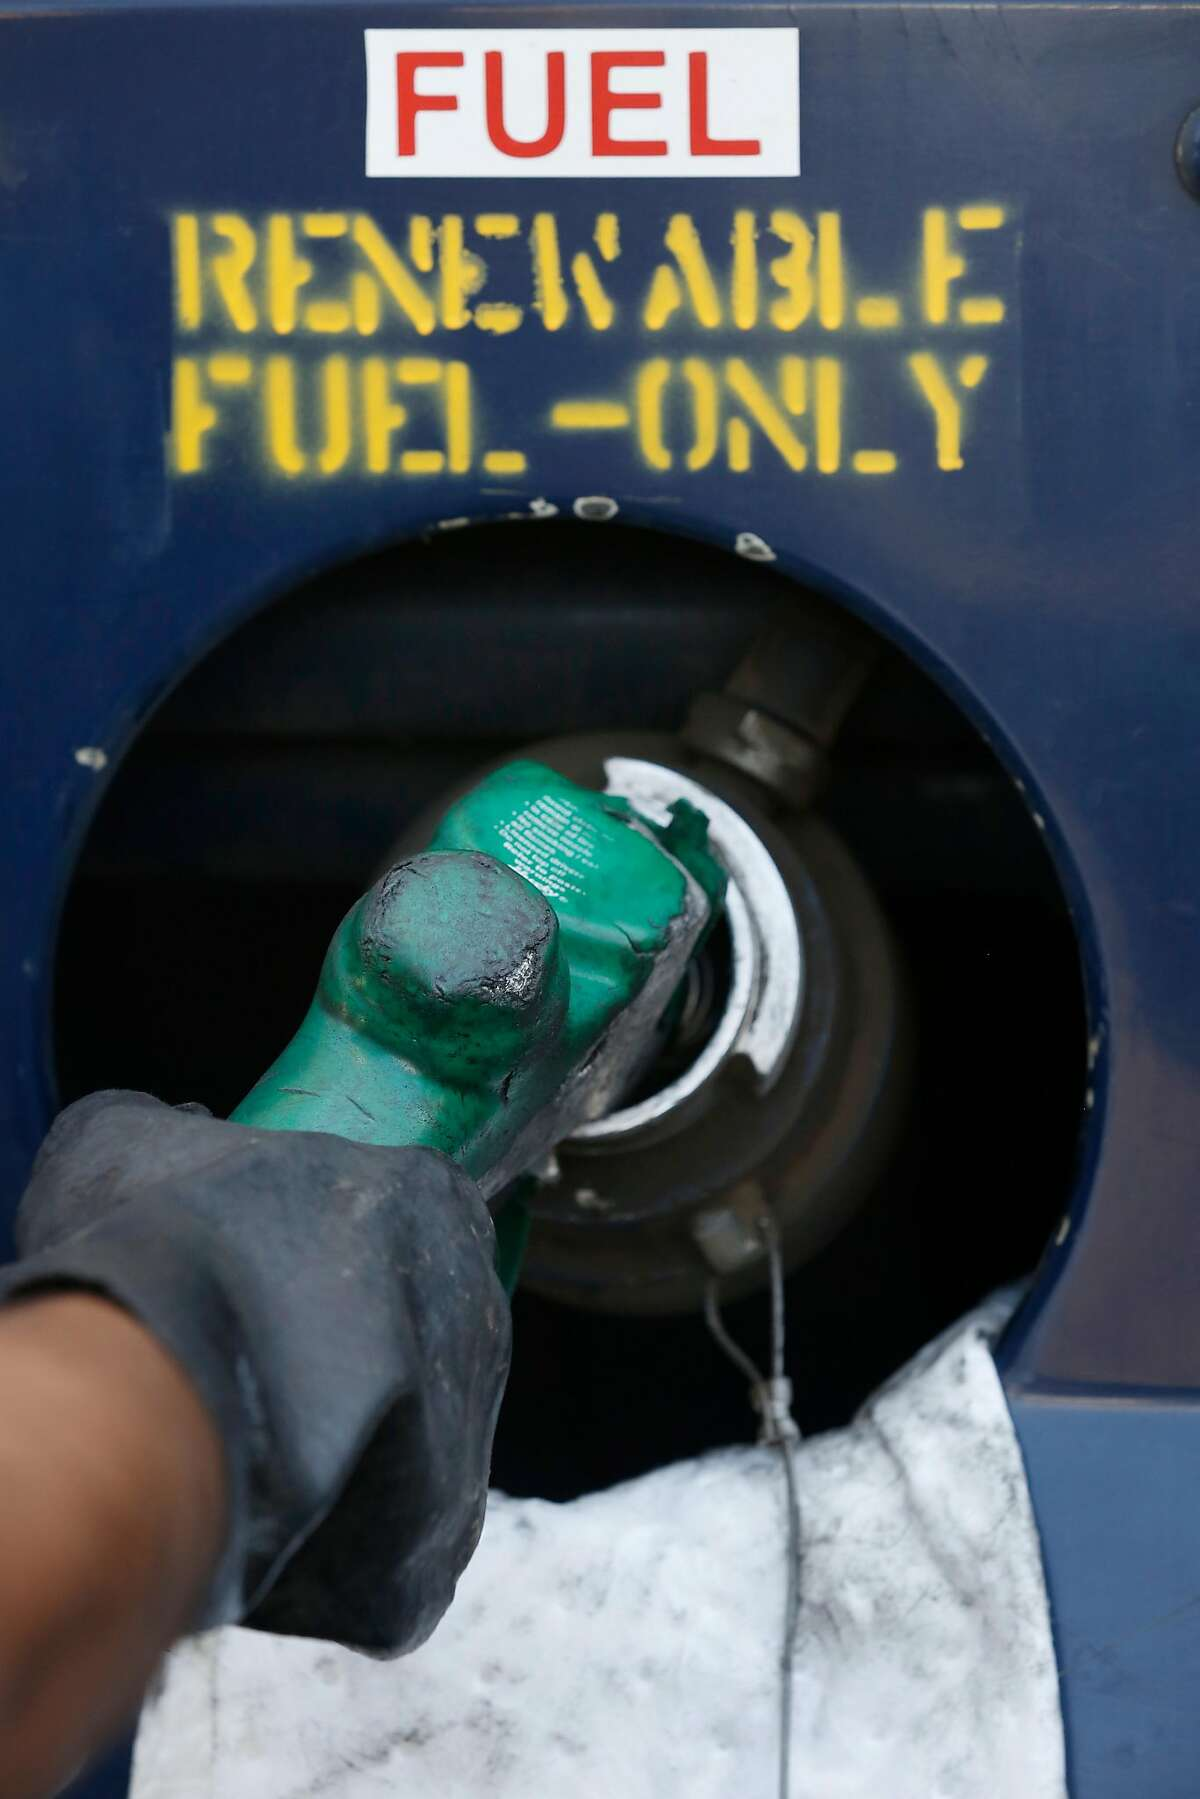 Oscar Muro, Golden Gate Petroleum trainer, fills a Capital Corridor locomotive with rewnewable diesel at the Amtrak Maintenance Facility on Tuesday, September 12, 2017 in Oakland, Calif.